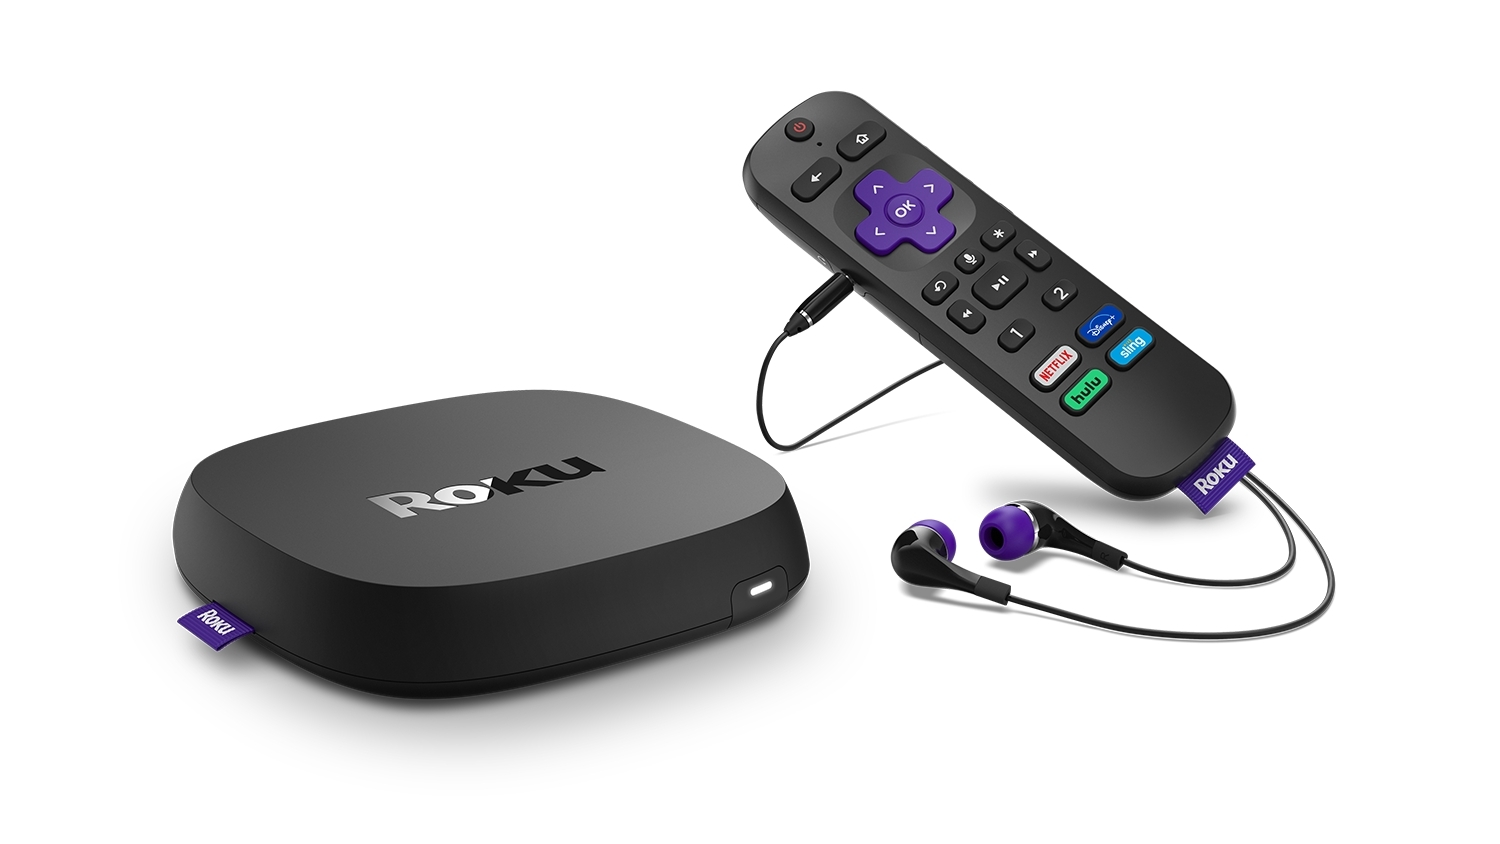 Roku presented two new streaming devices with the Roku Channel app